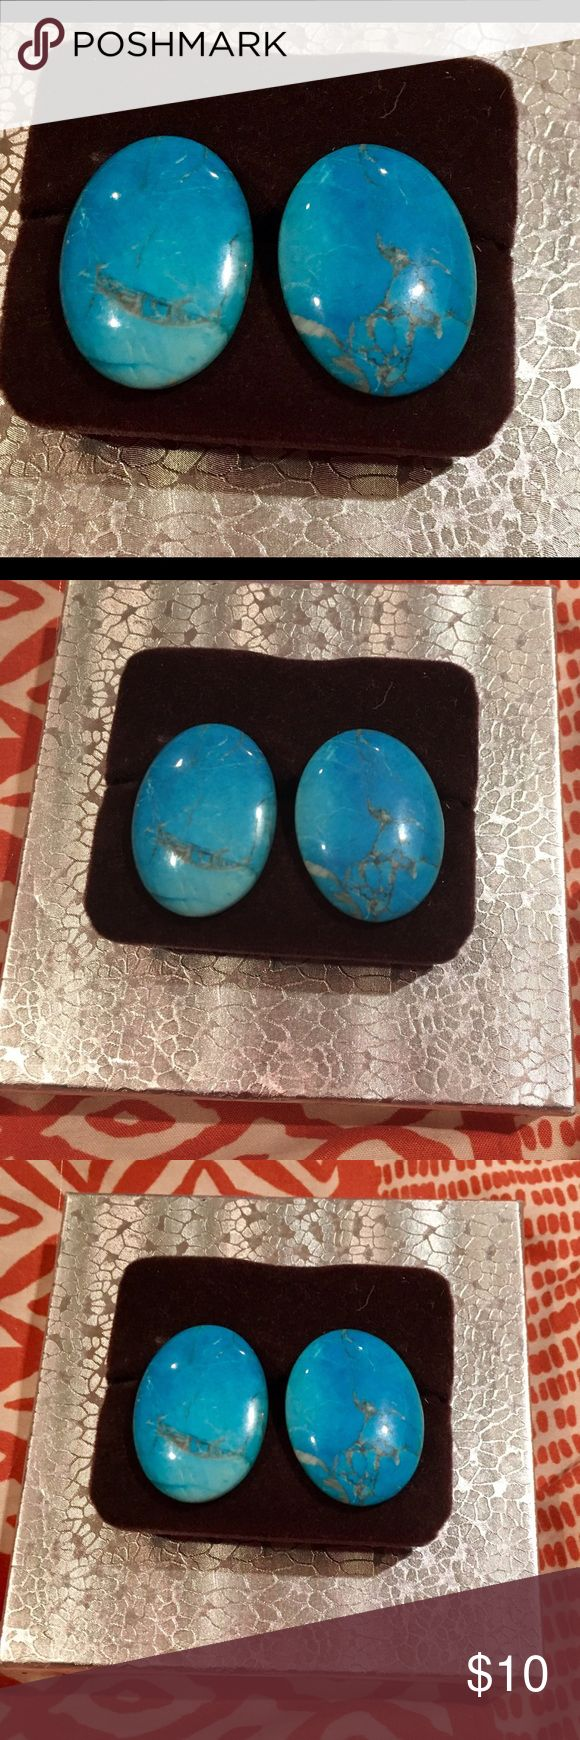 Vintage Aqua Blue Oval Earrings*Must See+* Stunning aqua blue Ceramic earrings measuring just over 1 inches long. These were my grandmothers so they are definitely vintage. Jewelry Earrings